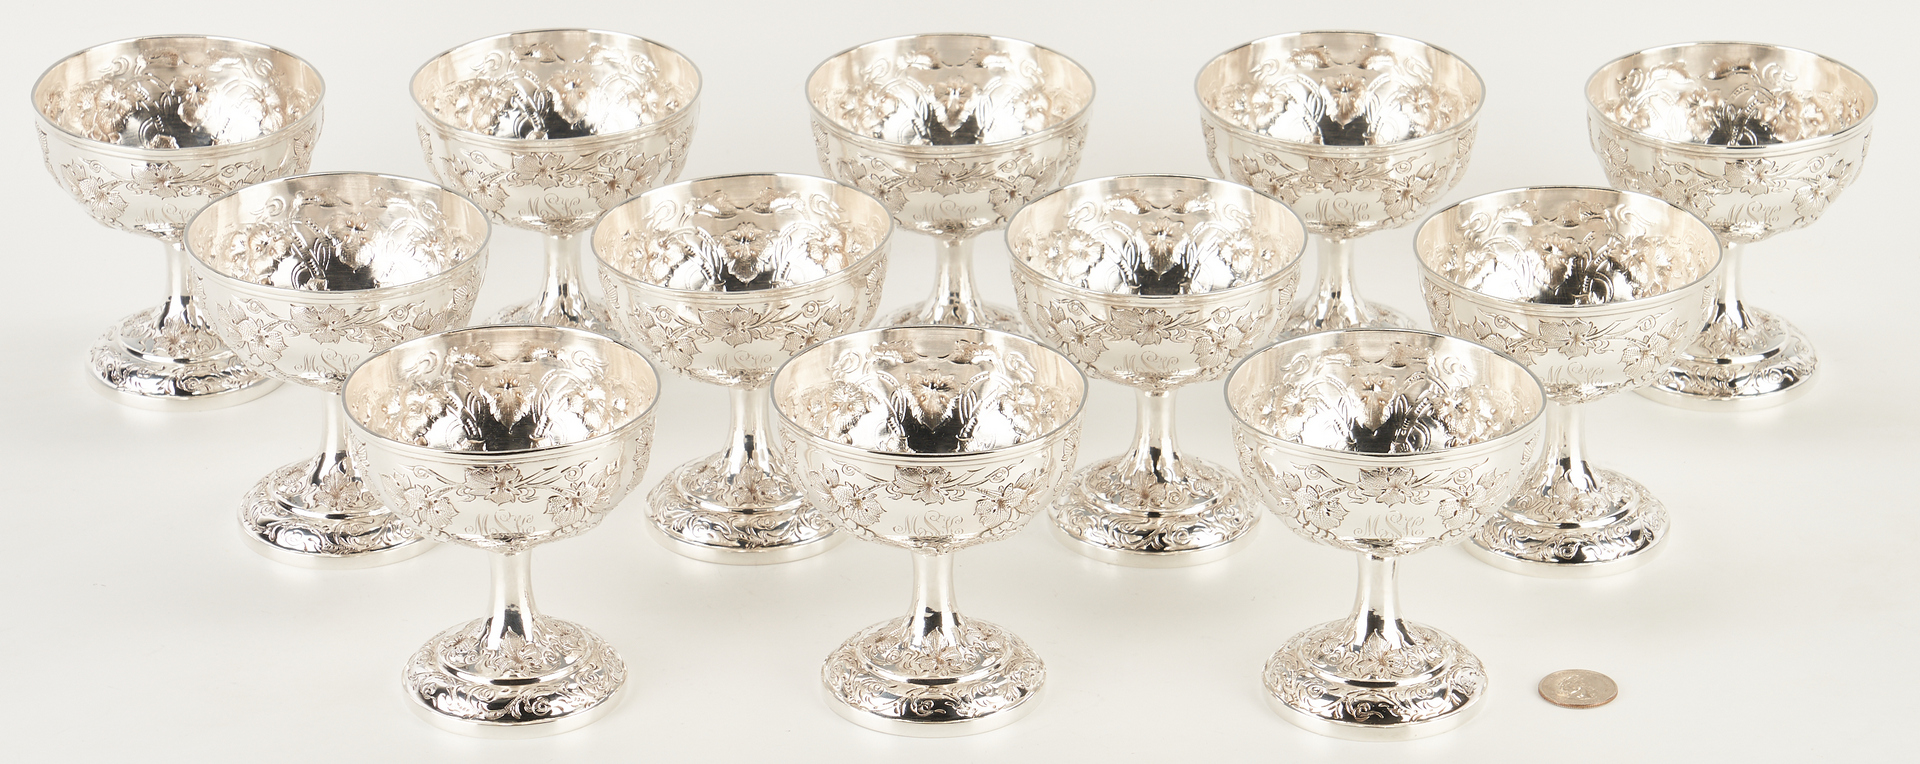 Lot 6: 12 Yu Chang Chinese Export Sterling Repousse Wine or Sherbets